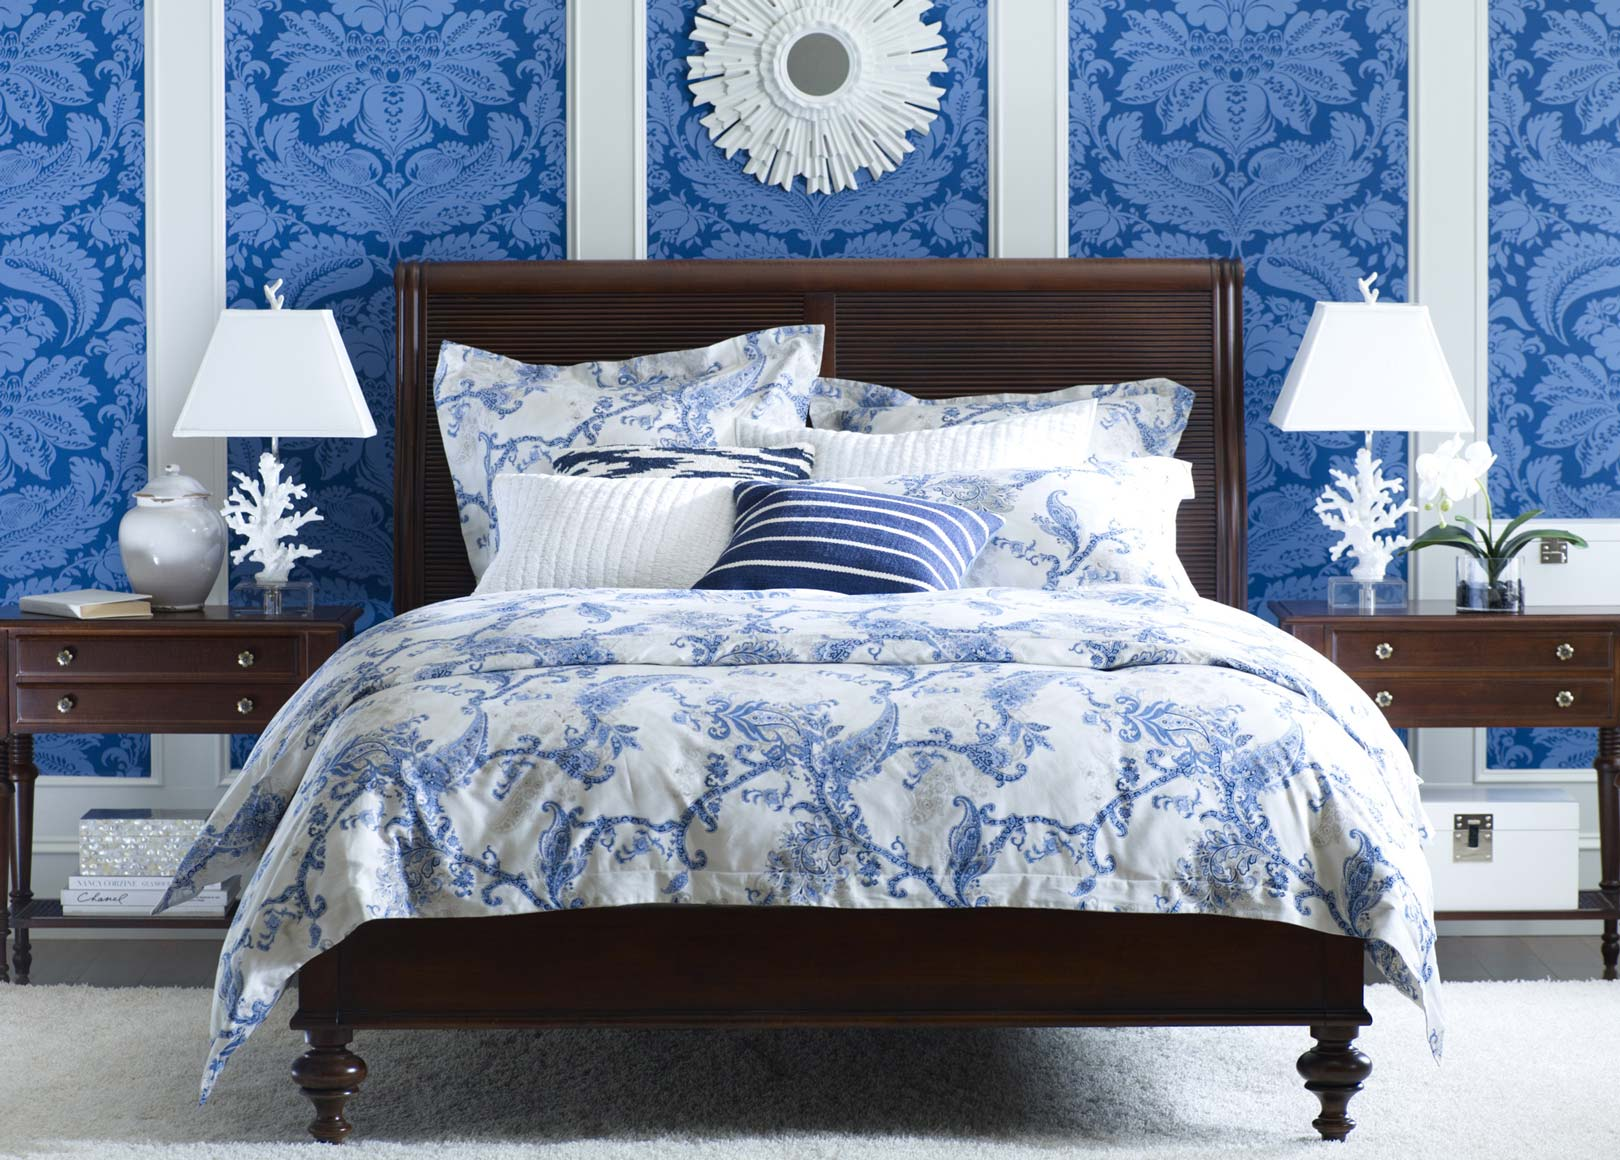 Delmore Blue Bedroom Main Image